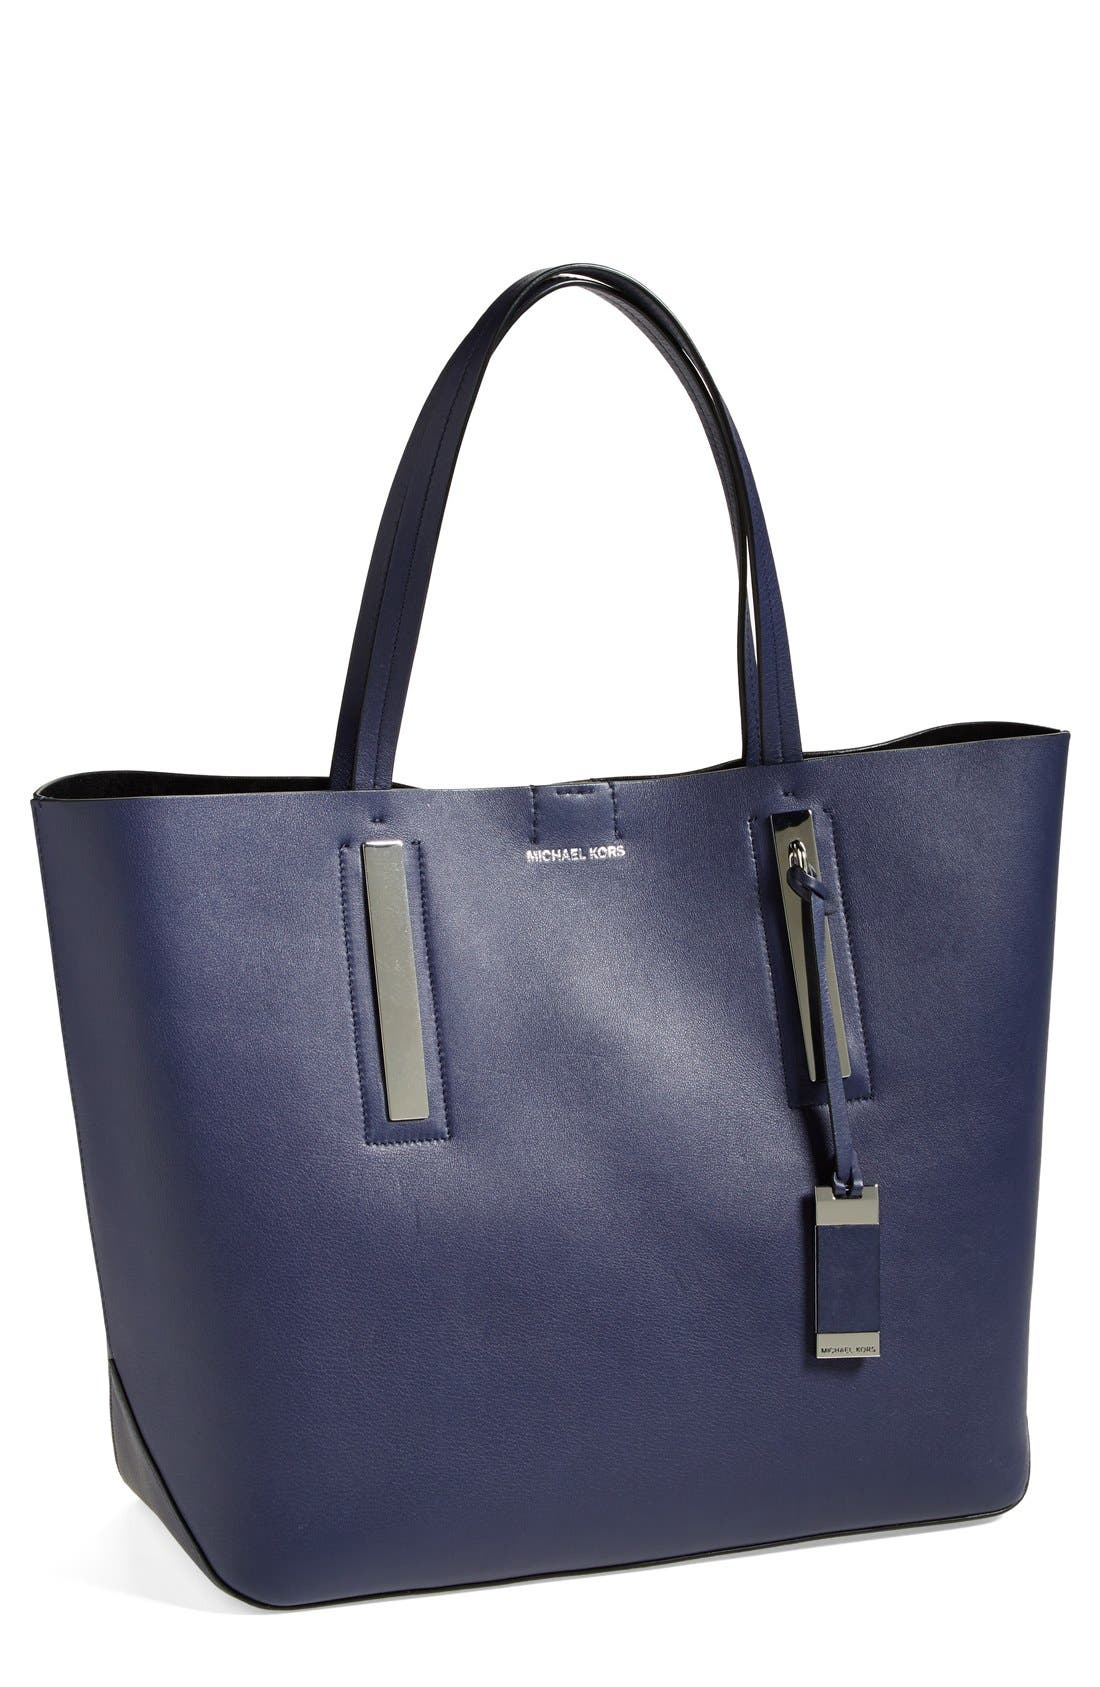 Main Image - Michael Kors 'Large Jaryn' Leather Tote